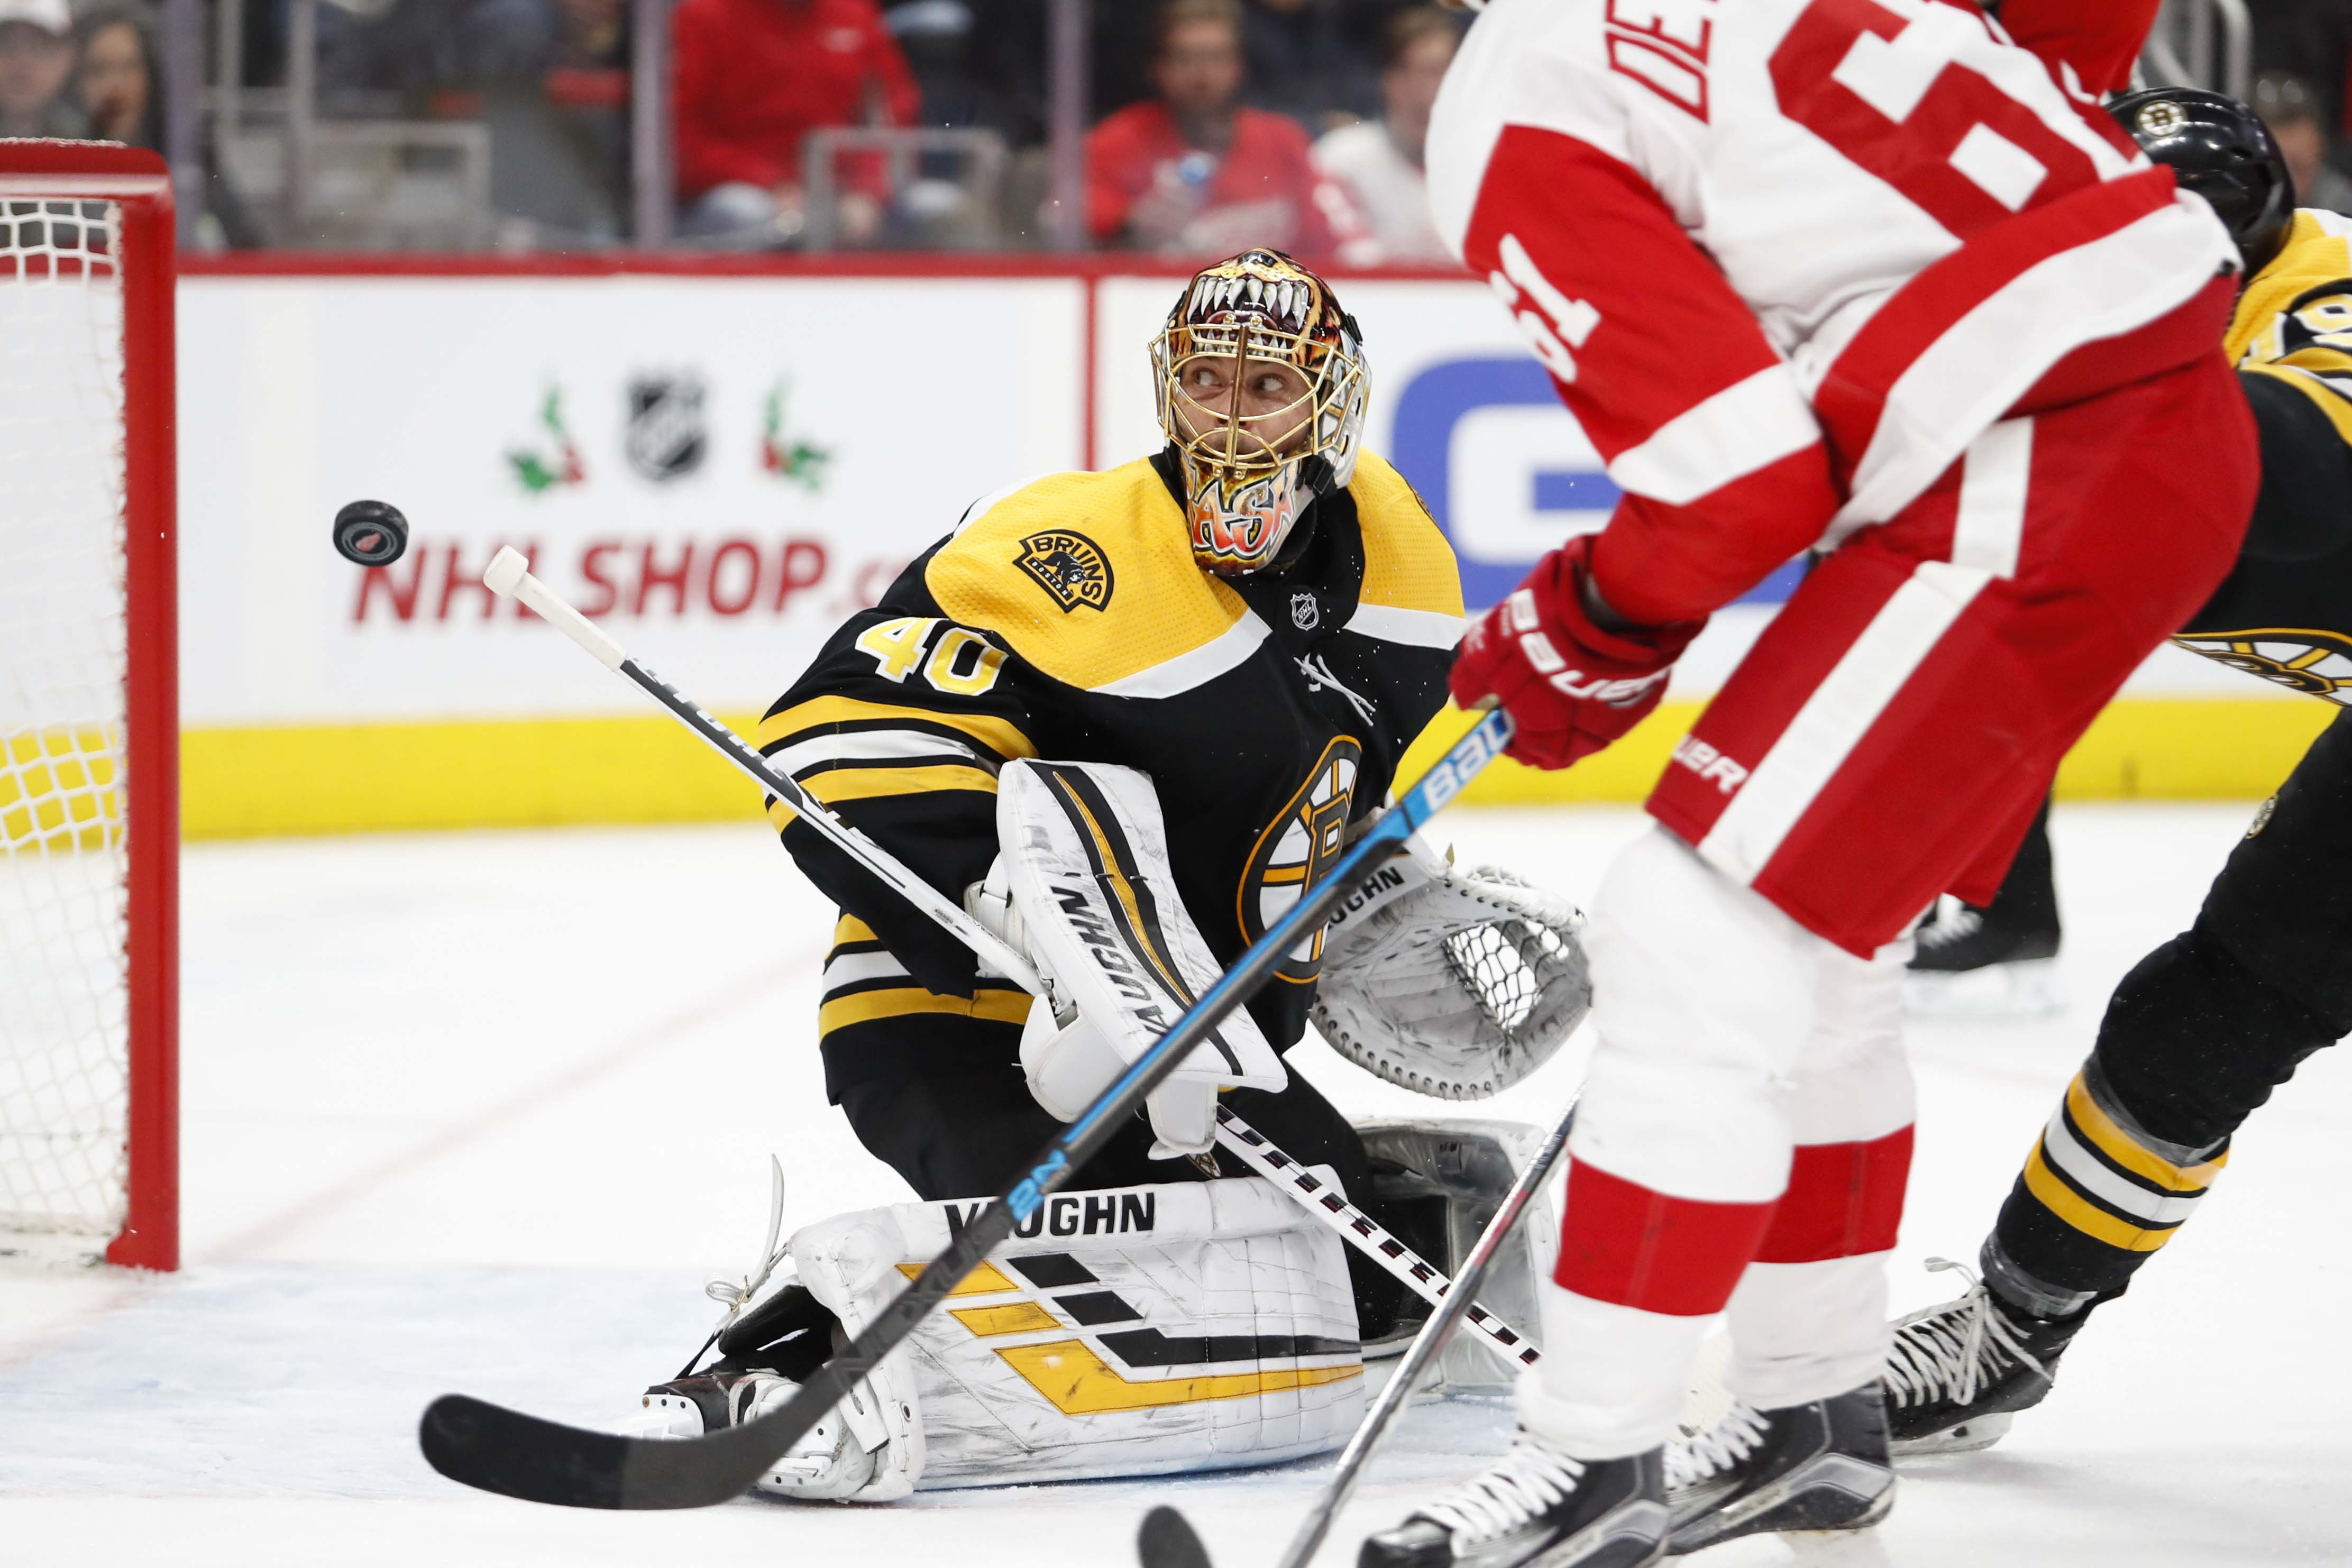 ab901ac8e05 Tuukka Rask continued his improved play for the Bruins in an overtime loss  at Detroit